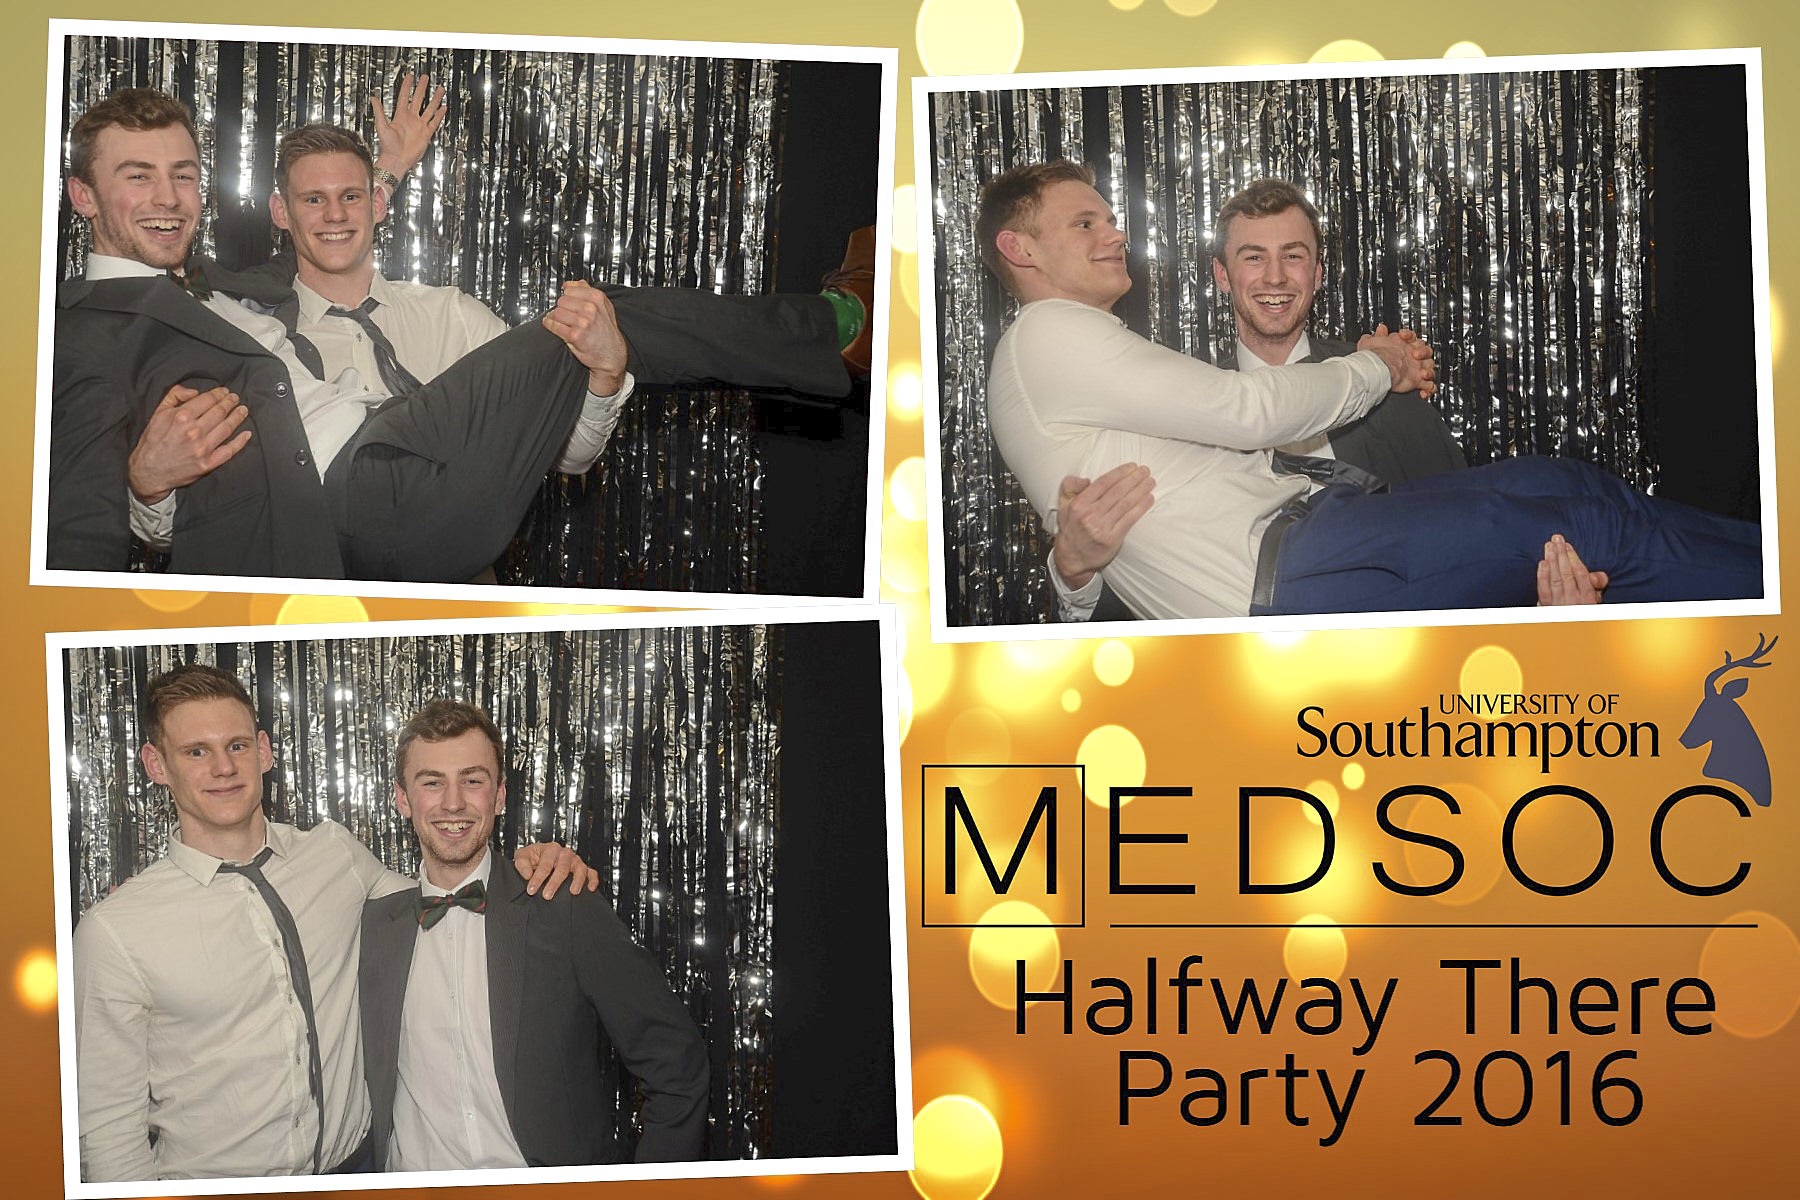 MedSoc Halfway There Party 2016 DS002547.jpg